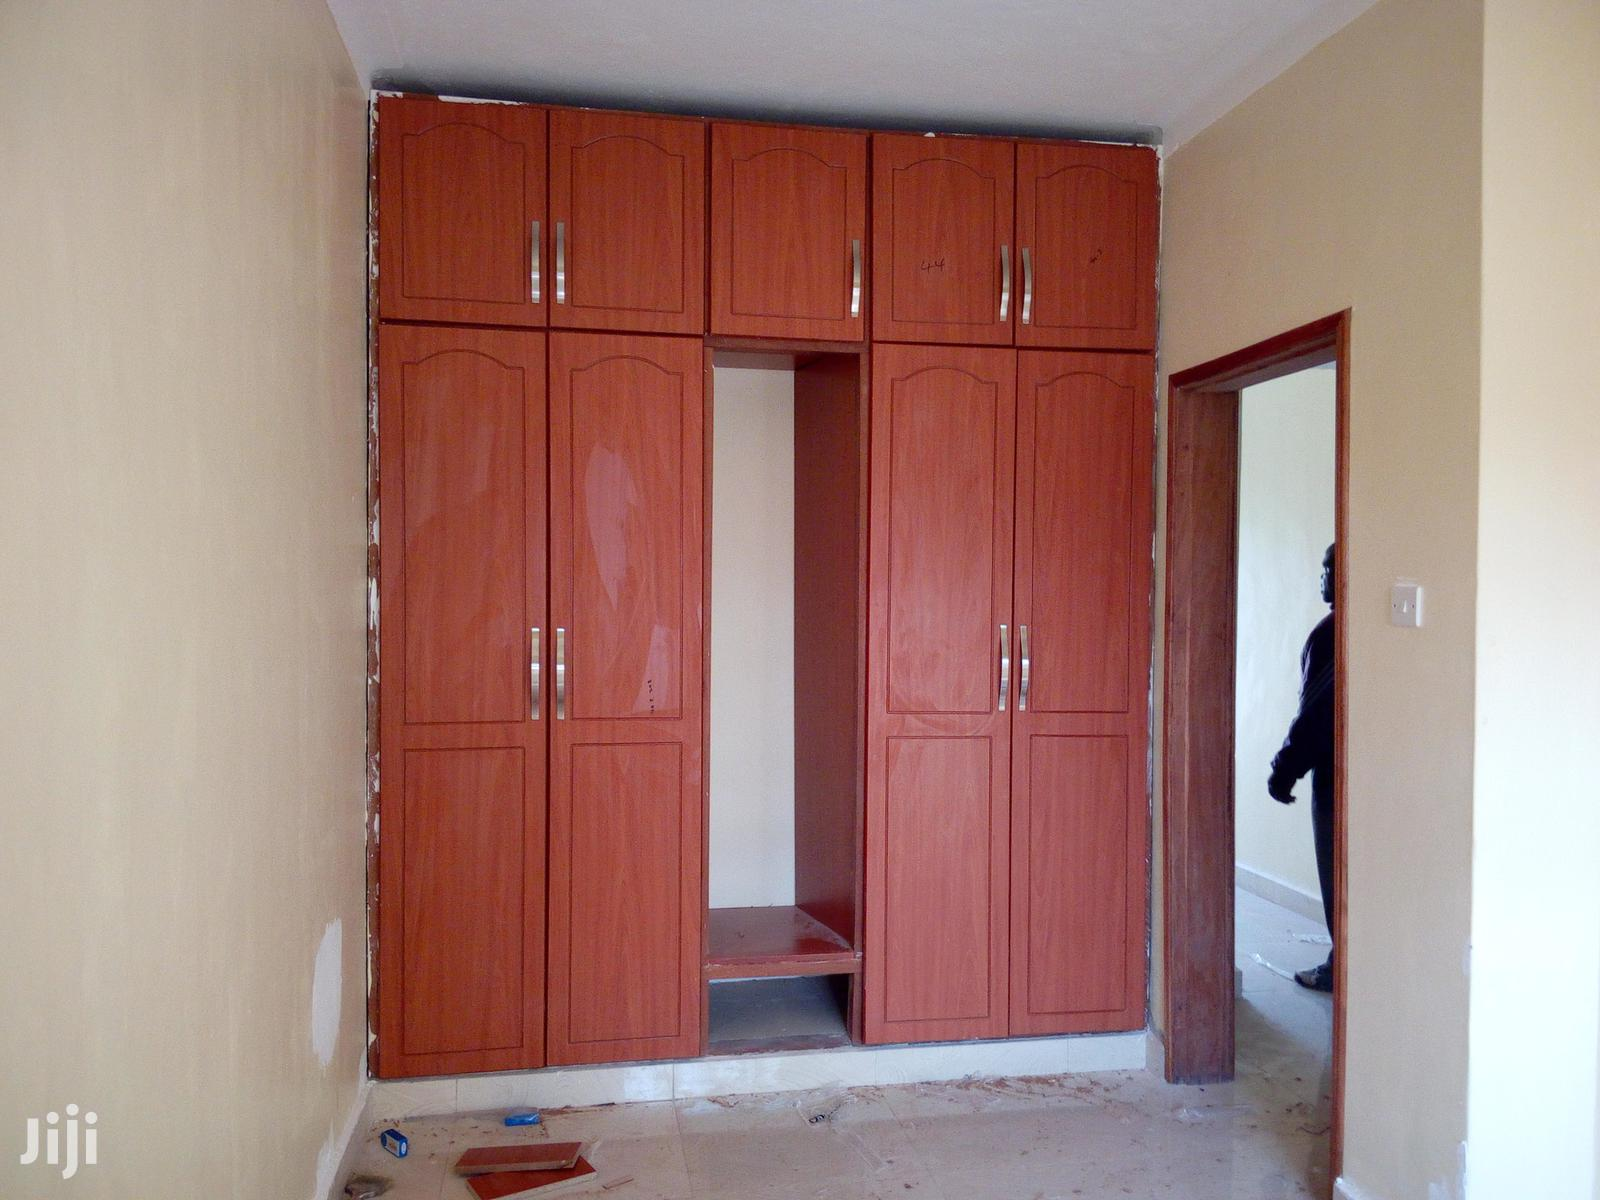 Kyaliwajjala Two Bedroom Apartment For Rent | Houses & Apartments For Rent for sale in Kampala, Central Region, Uganda